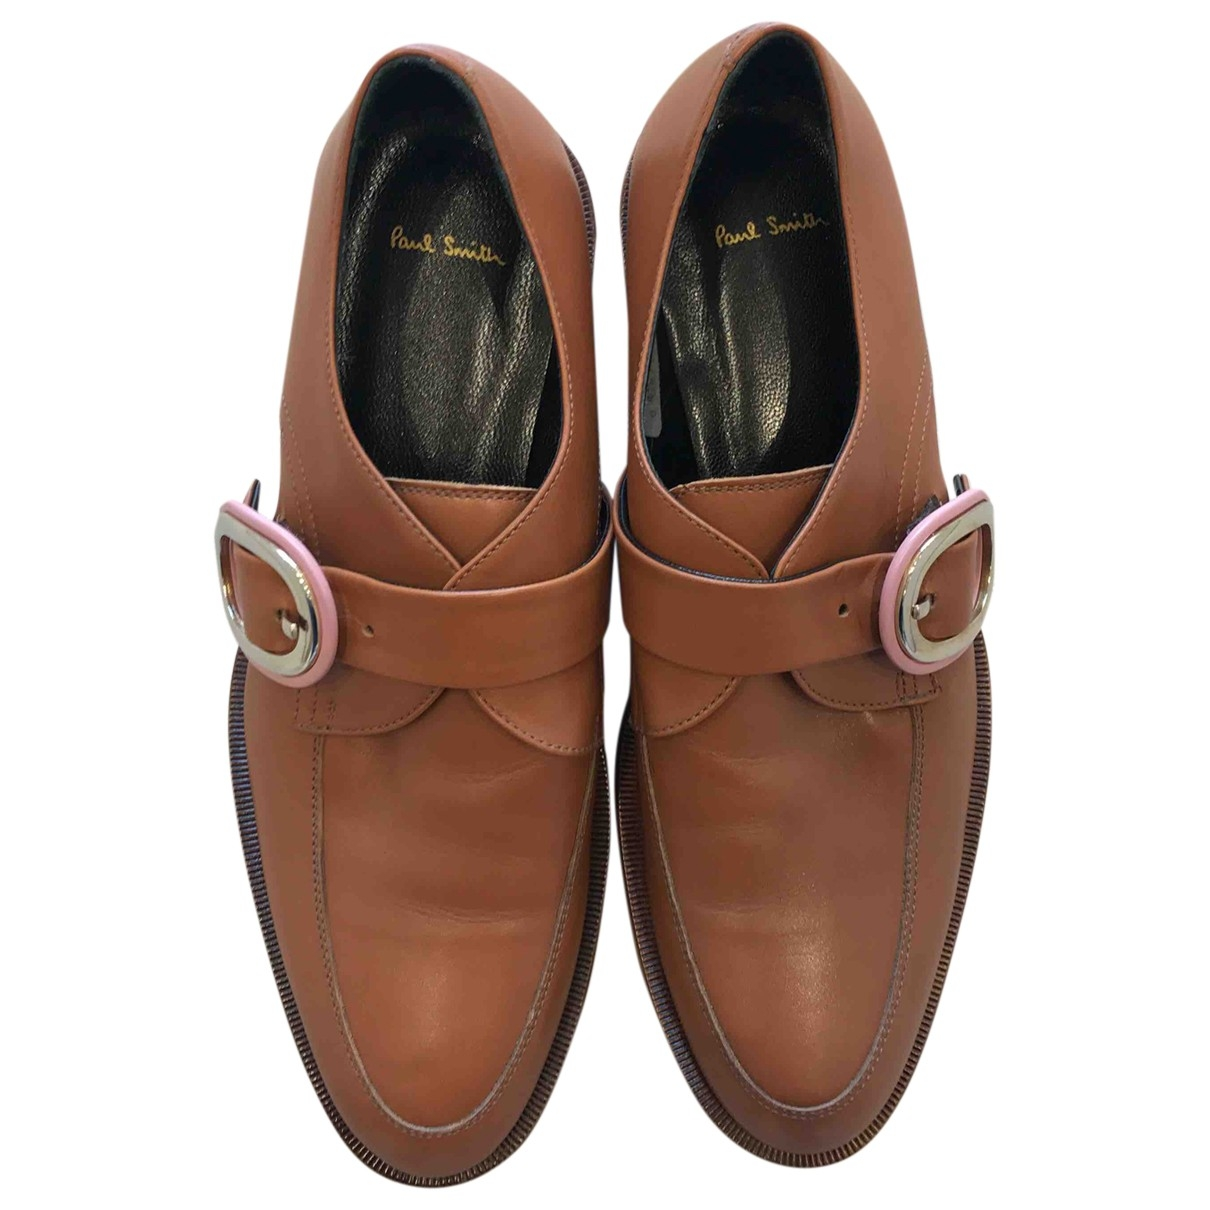 Mocasines de Cuero Paul Smith